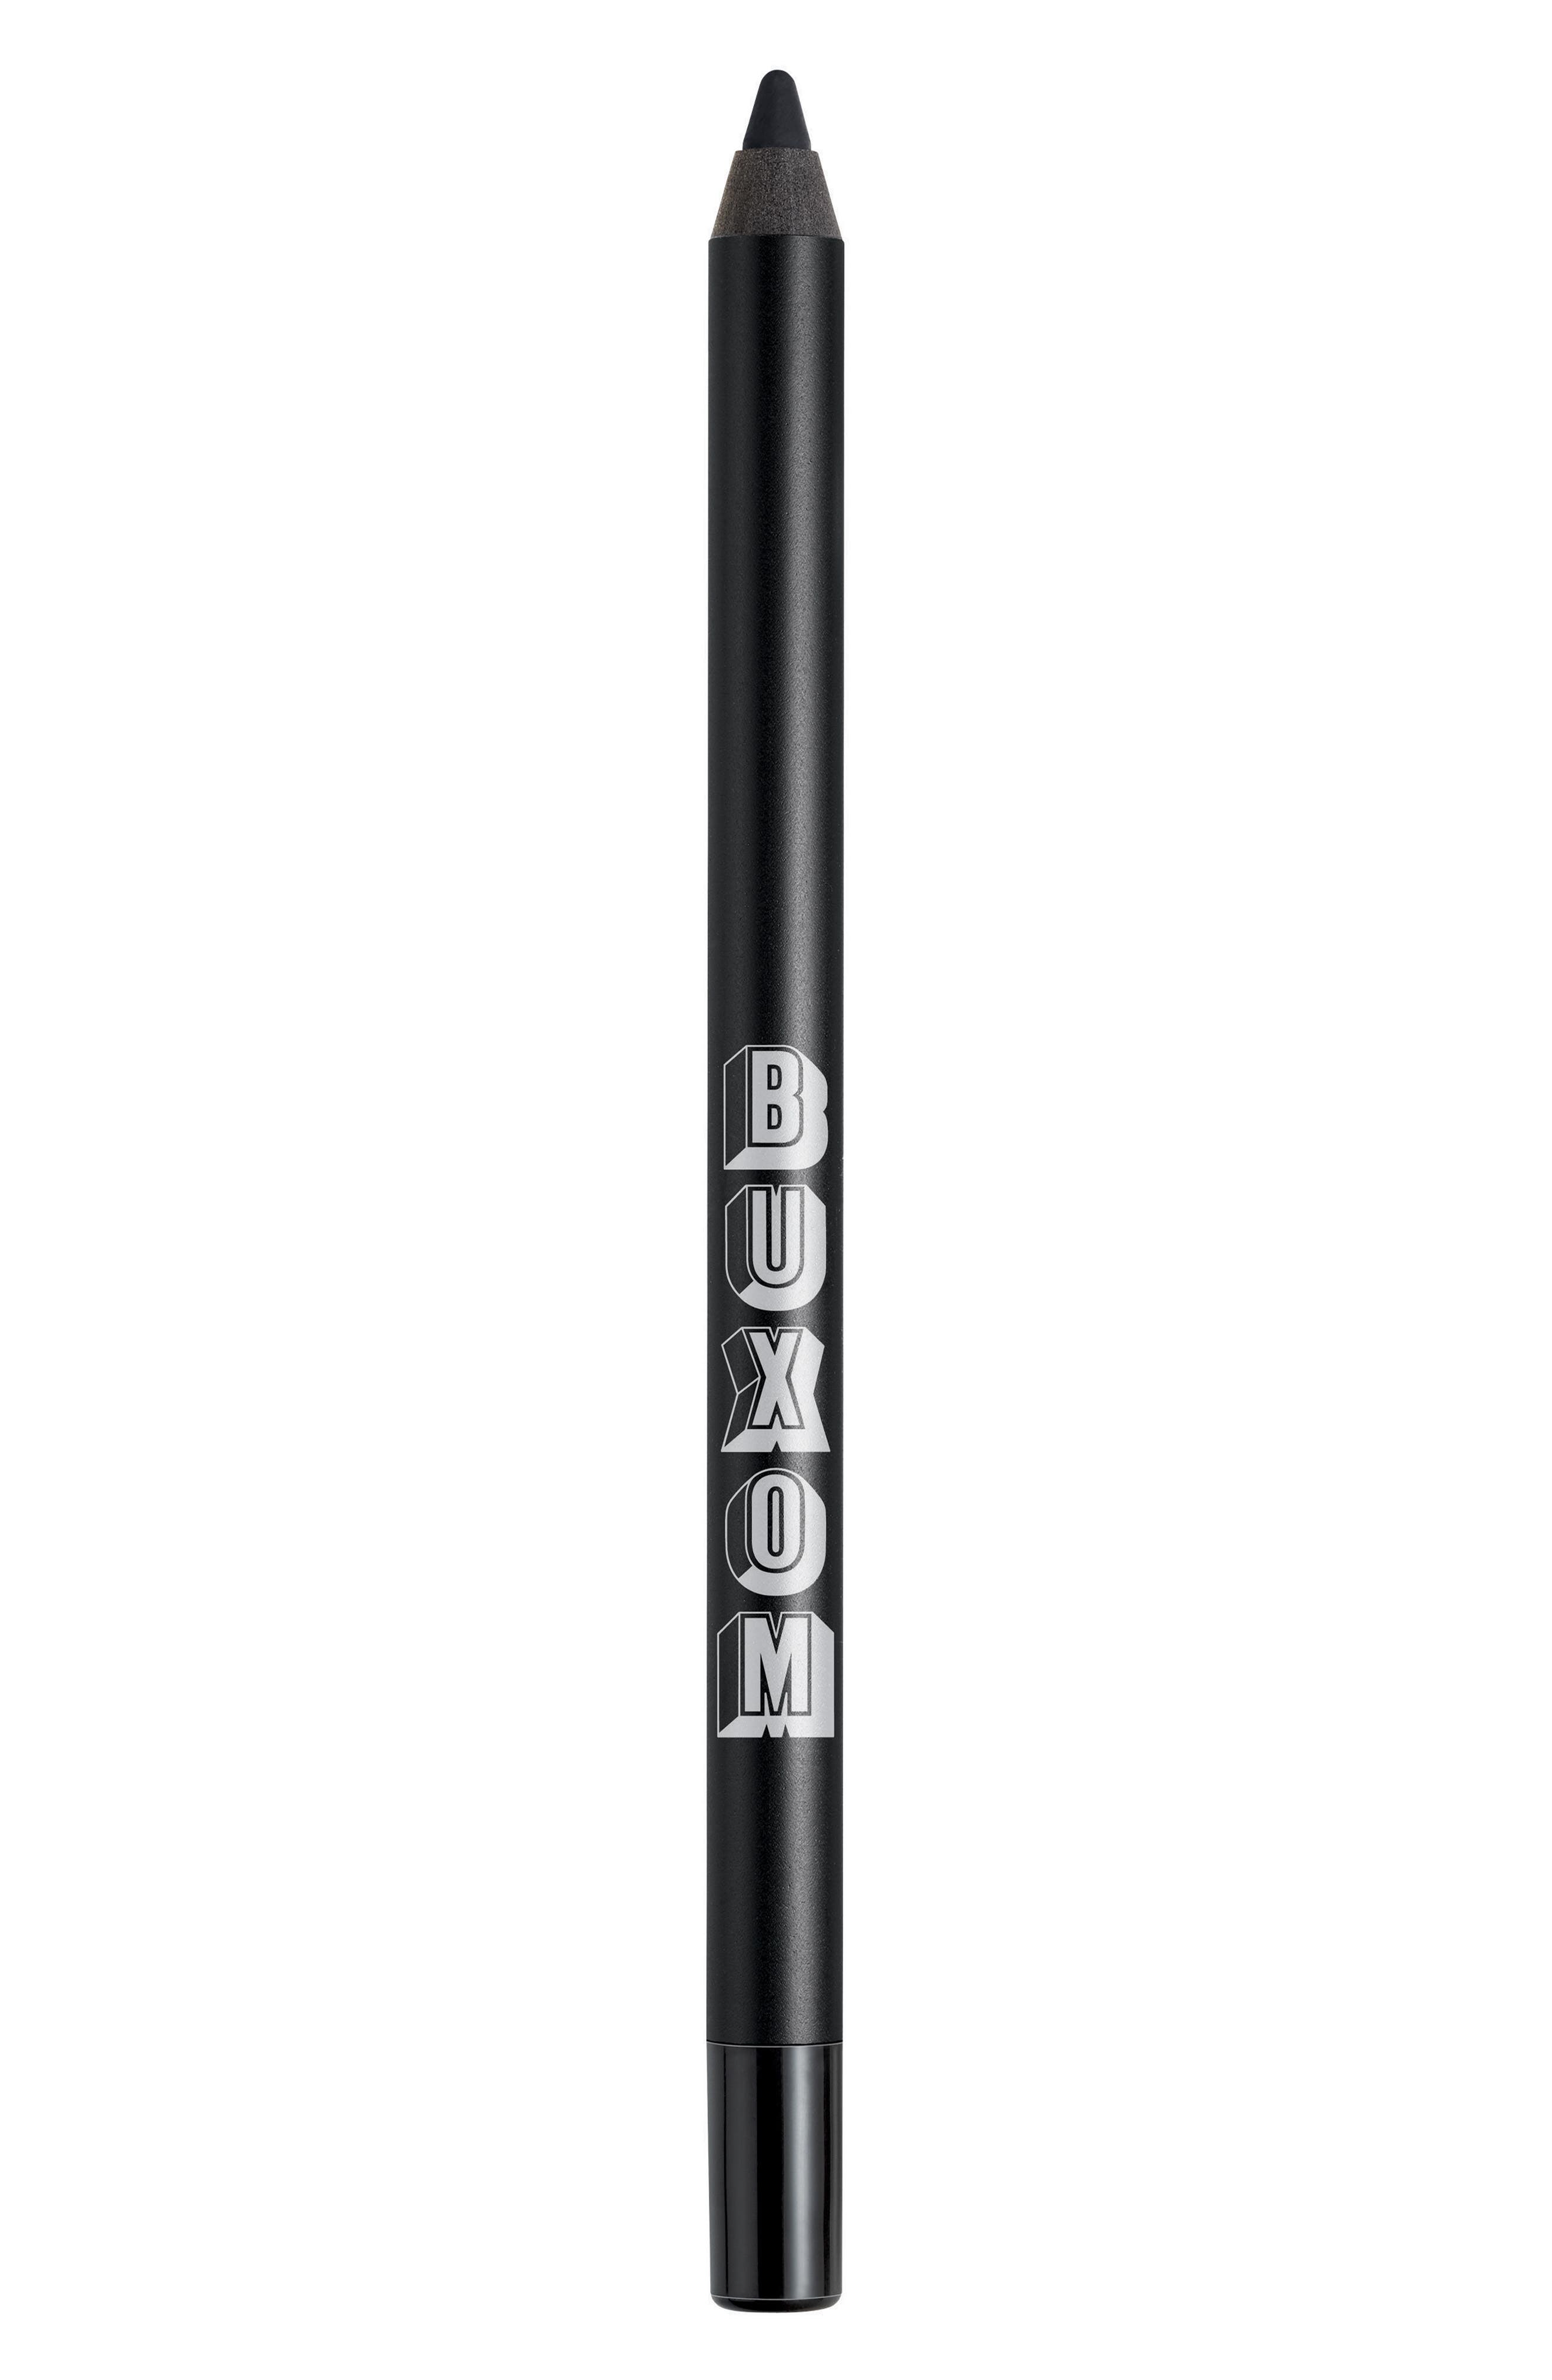 Buxom Hold The Line Waterproof Eyeliner - Call Me